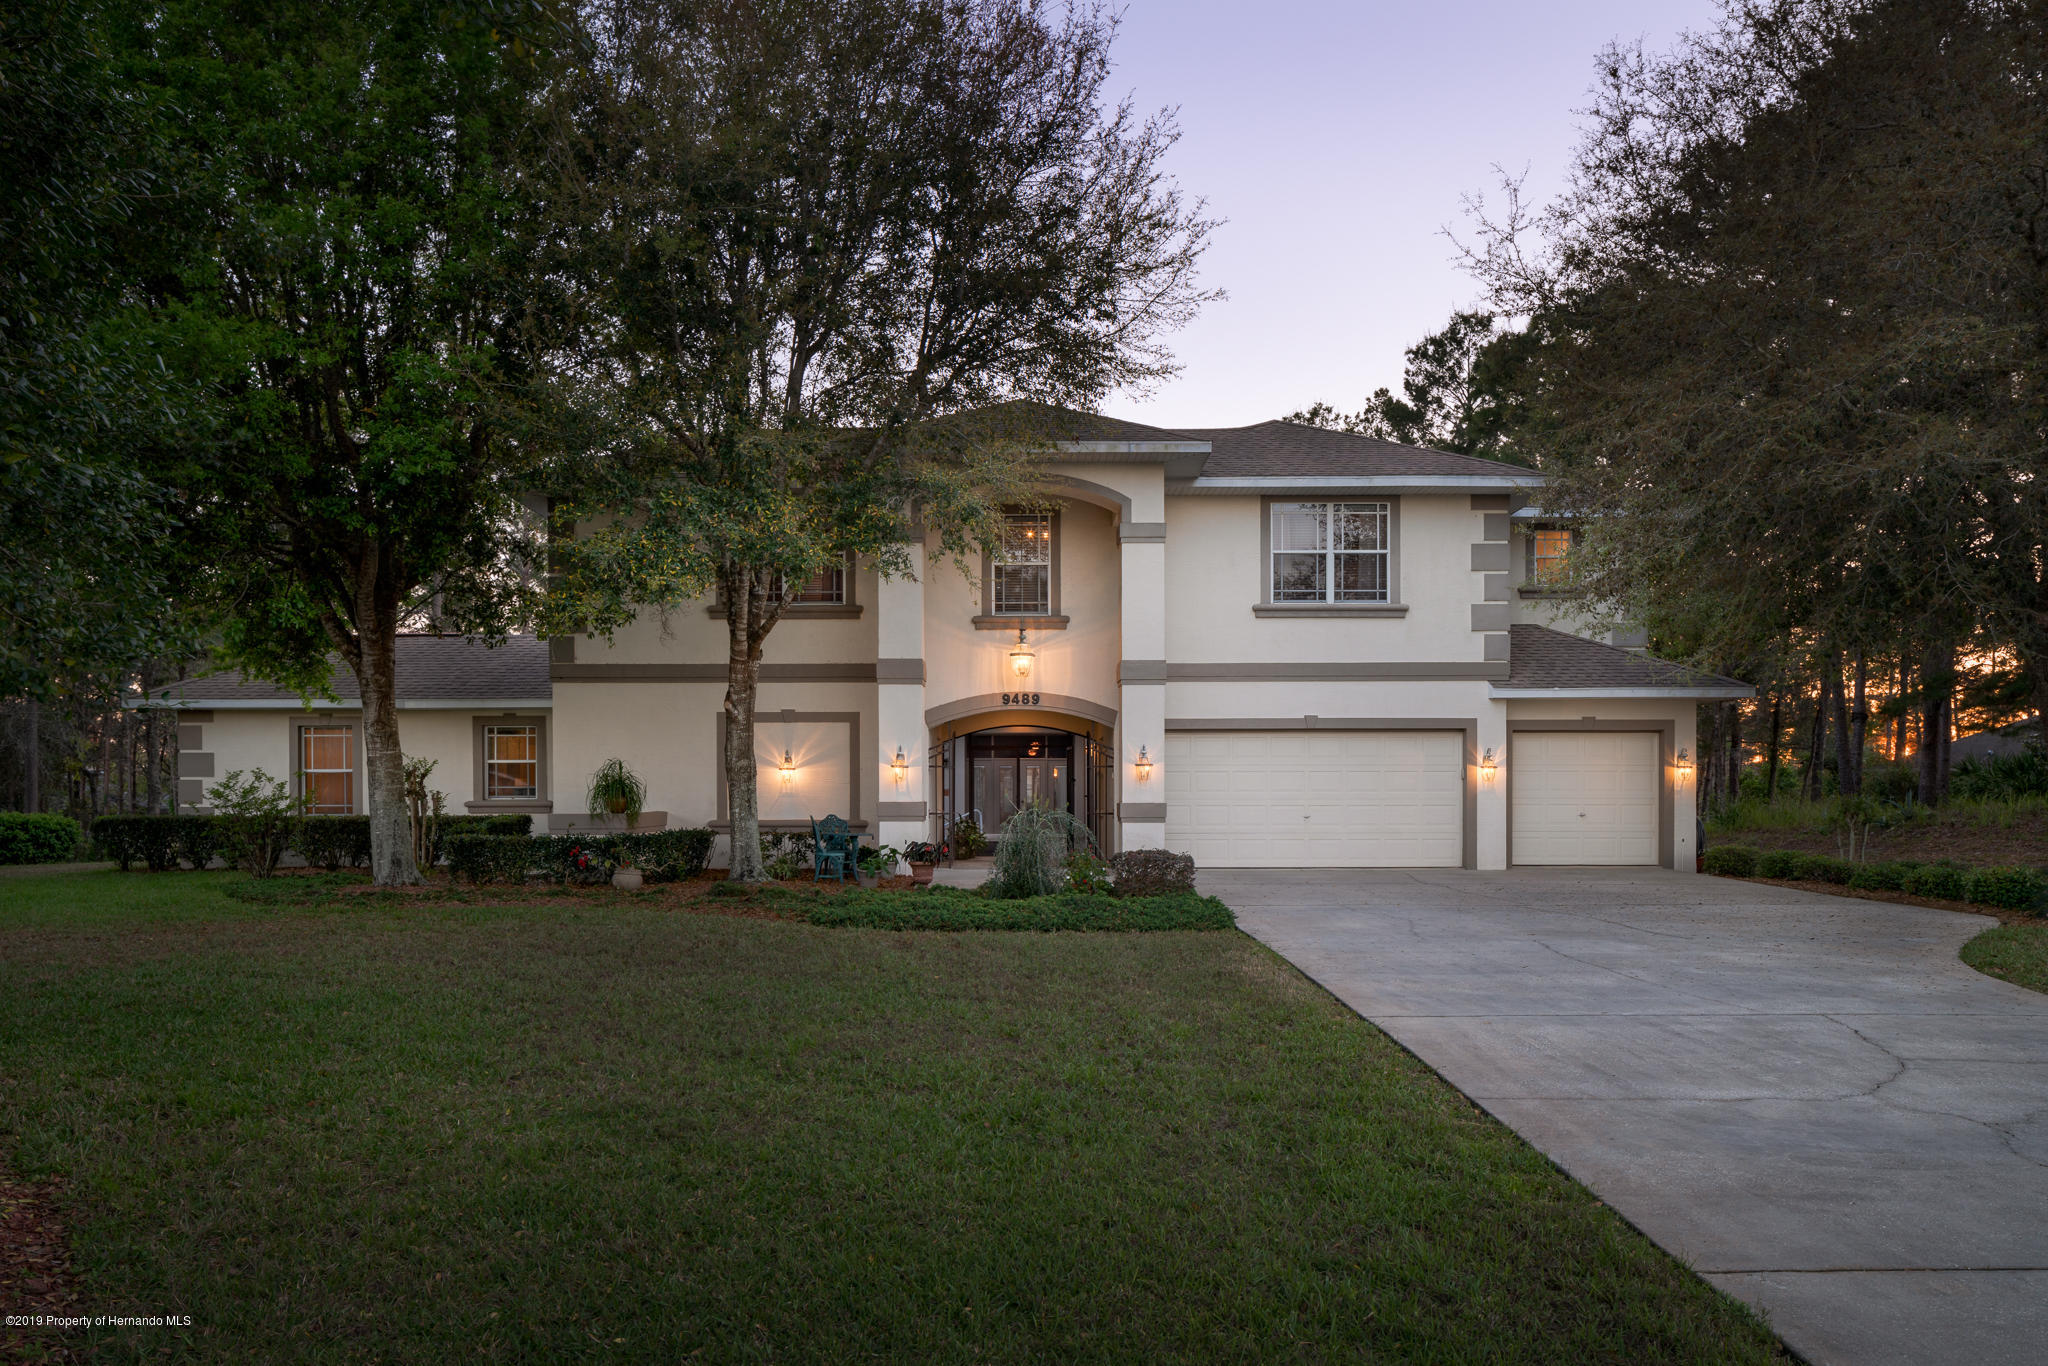 9489 Whisper Ridge Trail